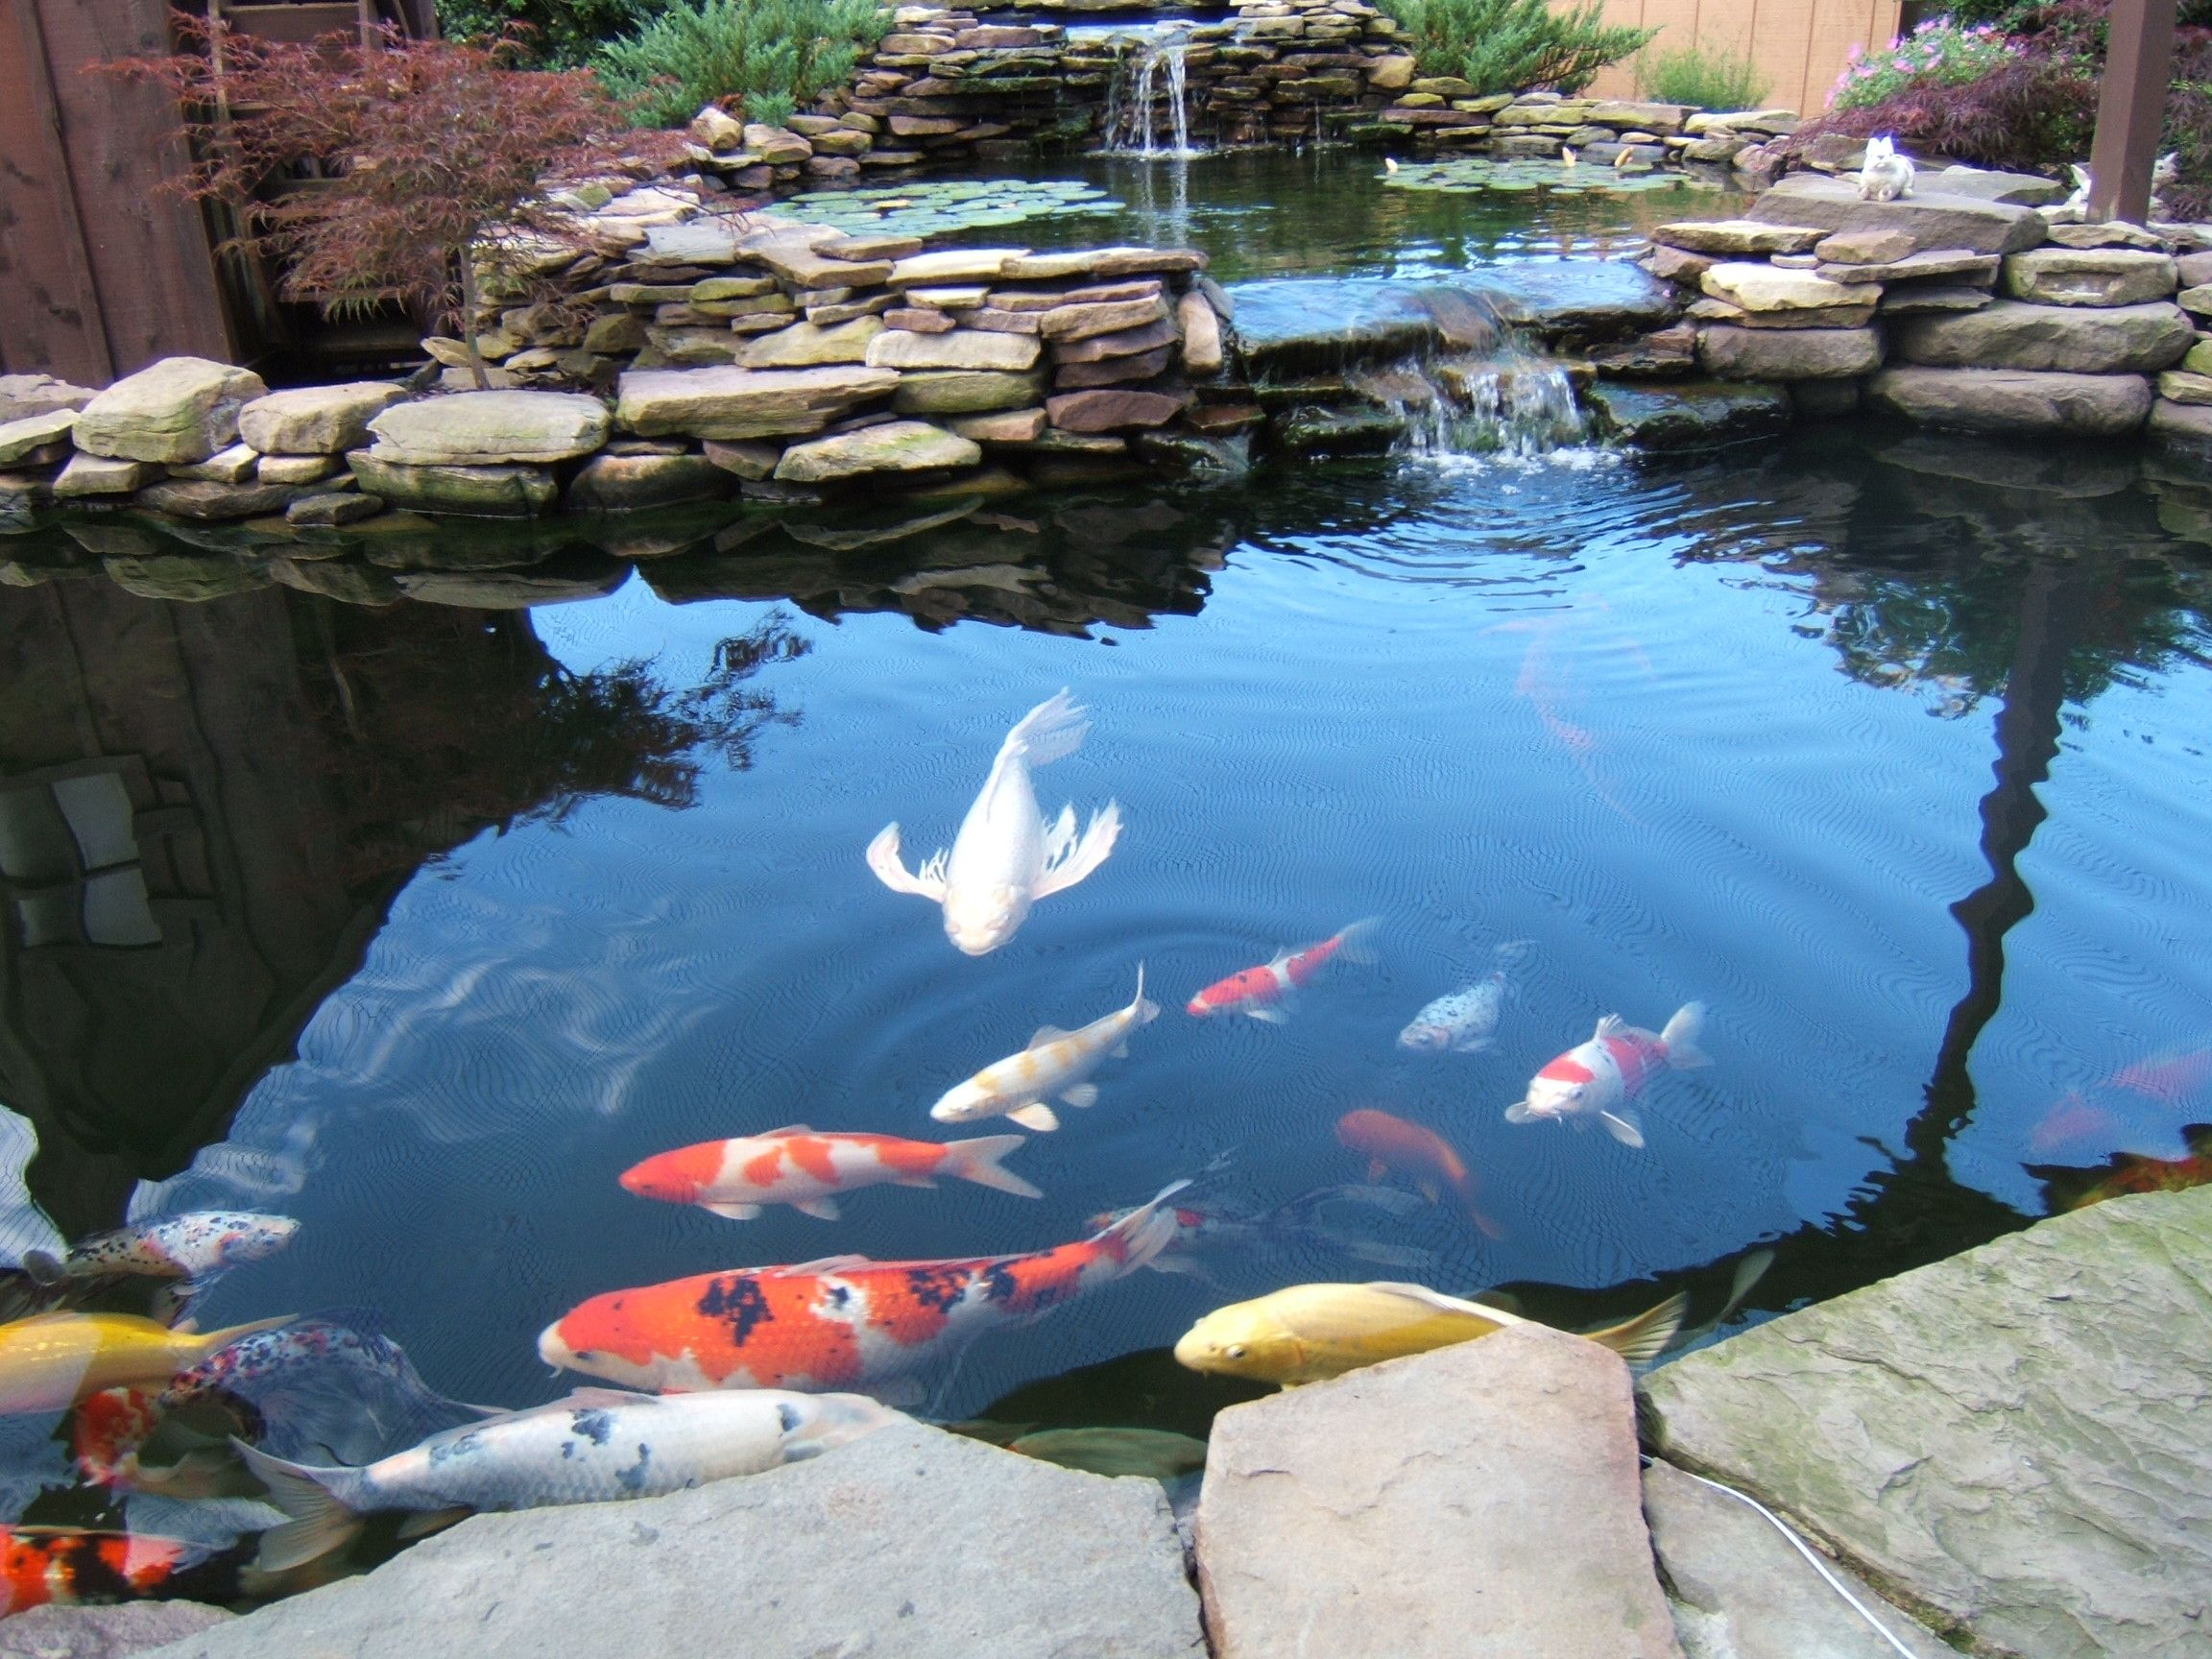 9 Awesome Diy Koi Pond And Waterfall Ideas For Your Back Yard Hit Crafts